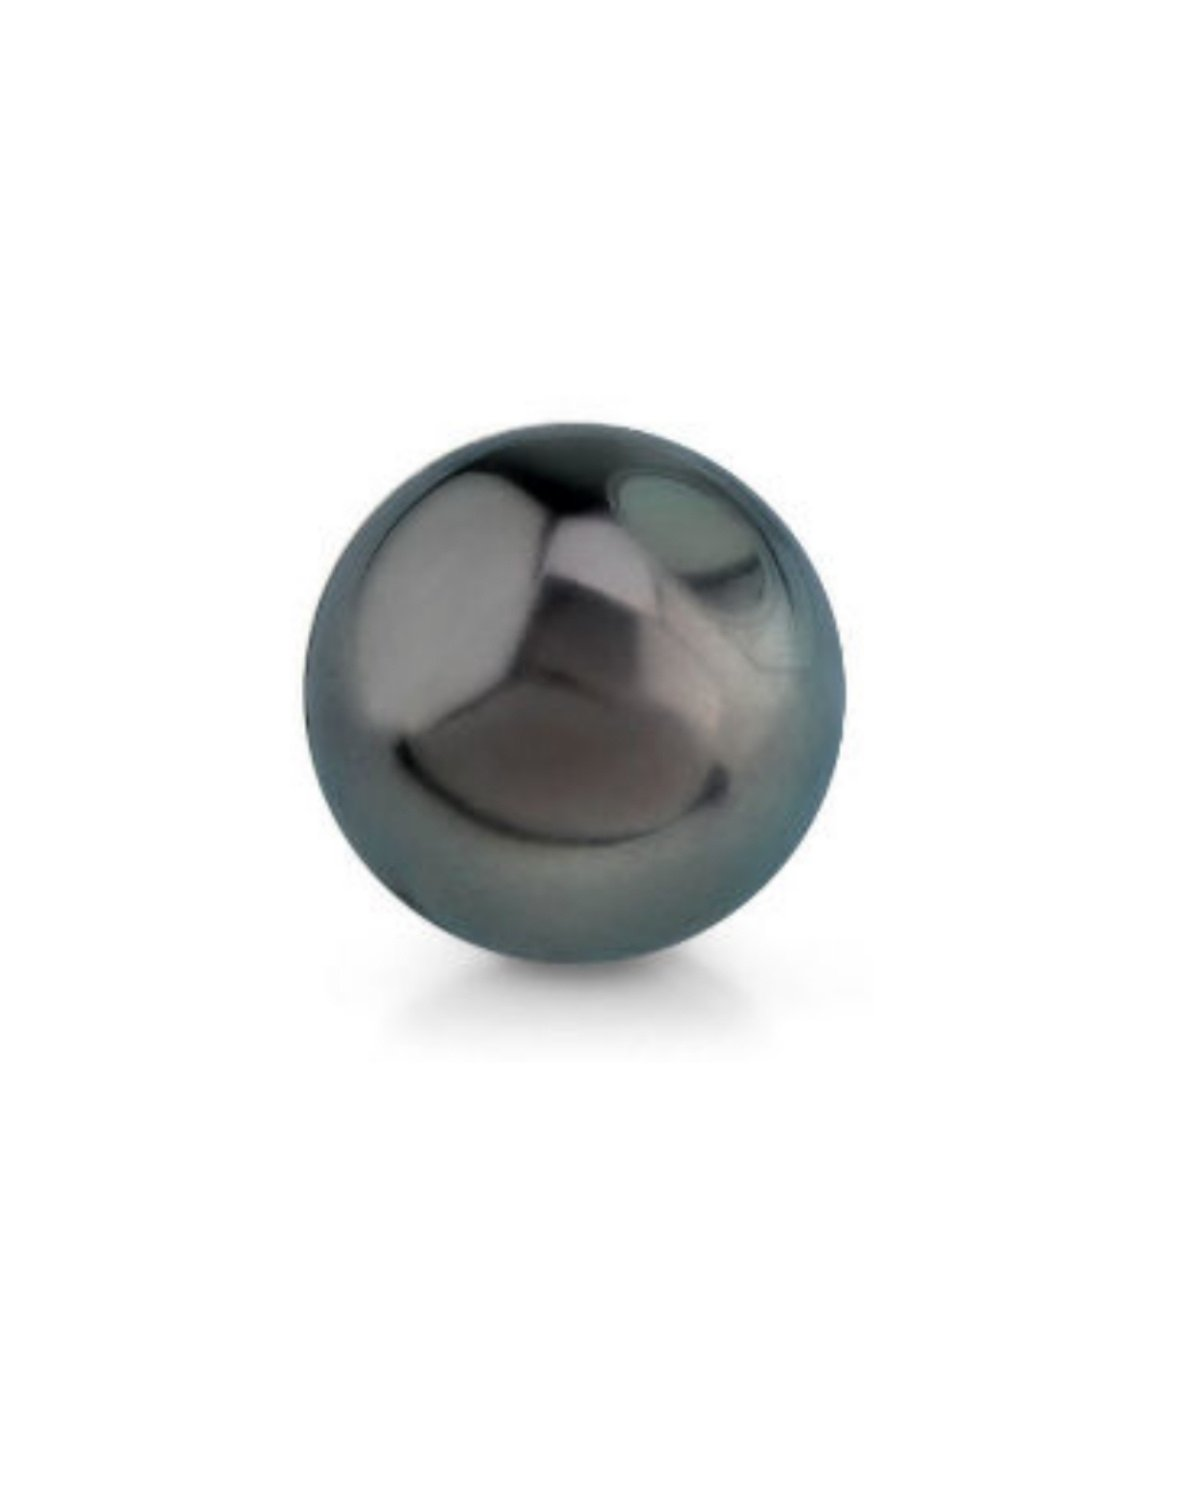 Genuine Single Black Tahitian South Sea Undrilled Round Loose Cultured Pearl - AAA Quality by The Pearl Source